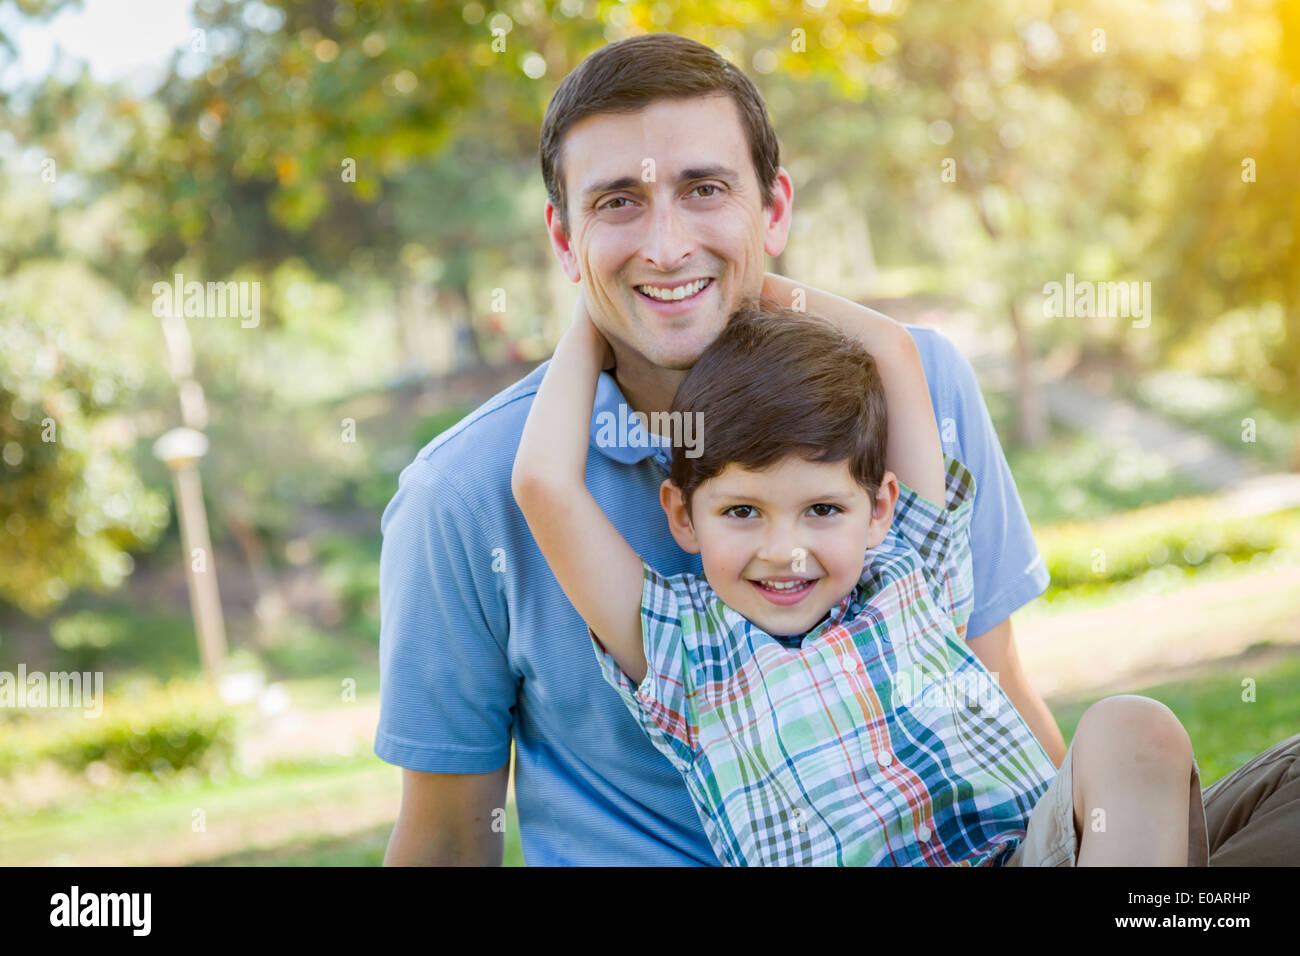 Handsome Mixed Race Father and Young Son Portrait in the Park. - Stock Image